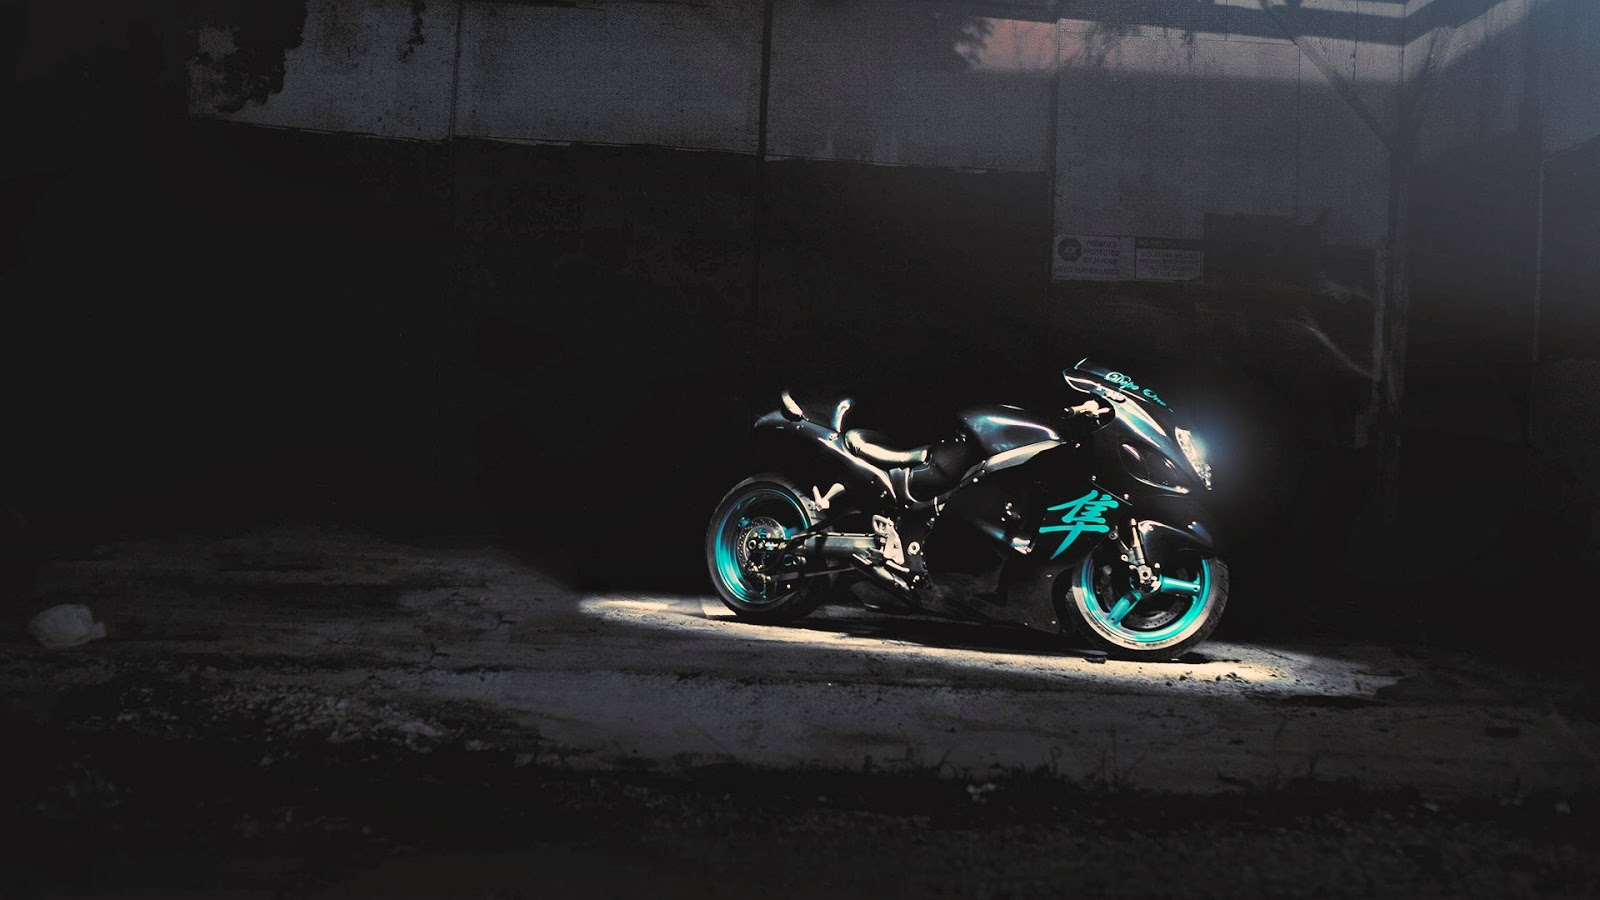 Amazing Super HD Bike wallpapers - Image Wallpapers